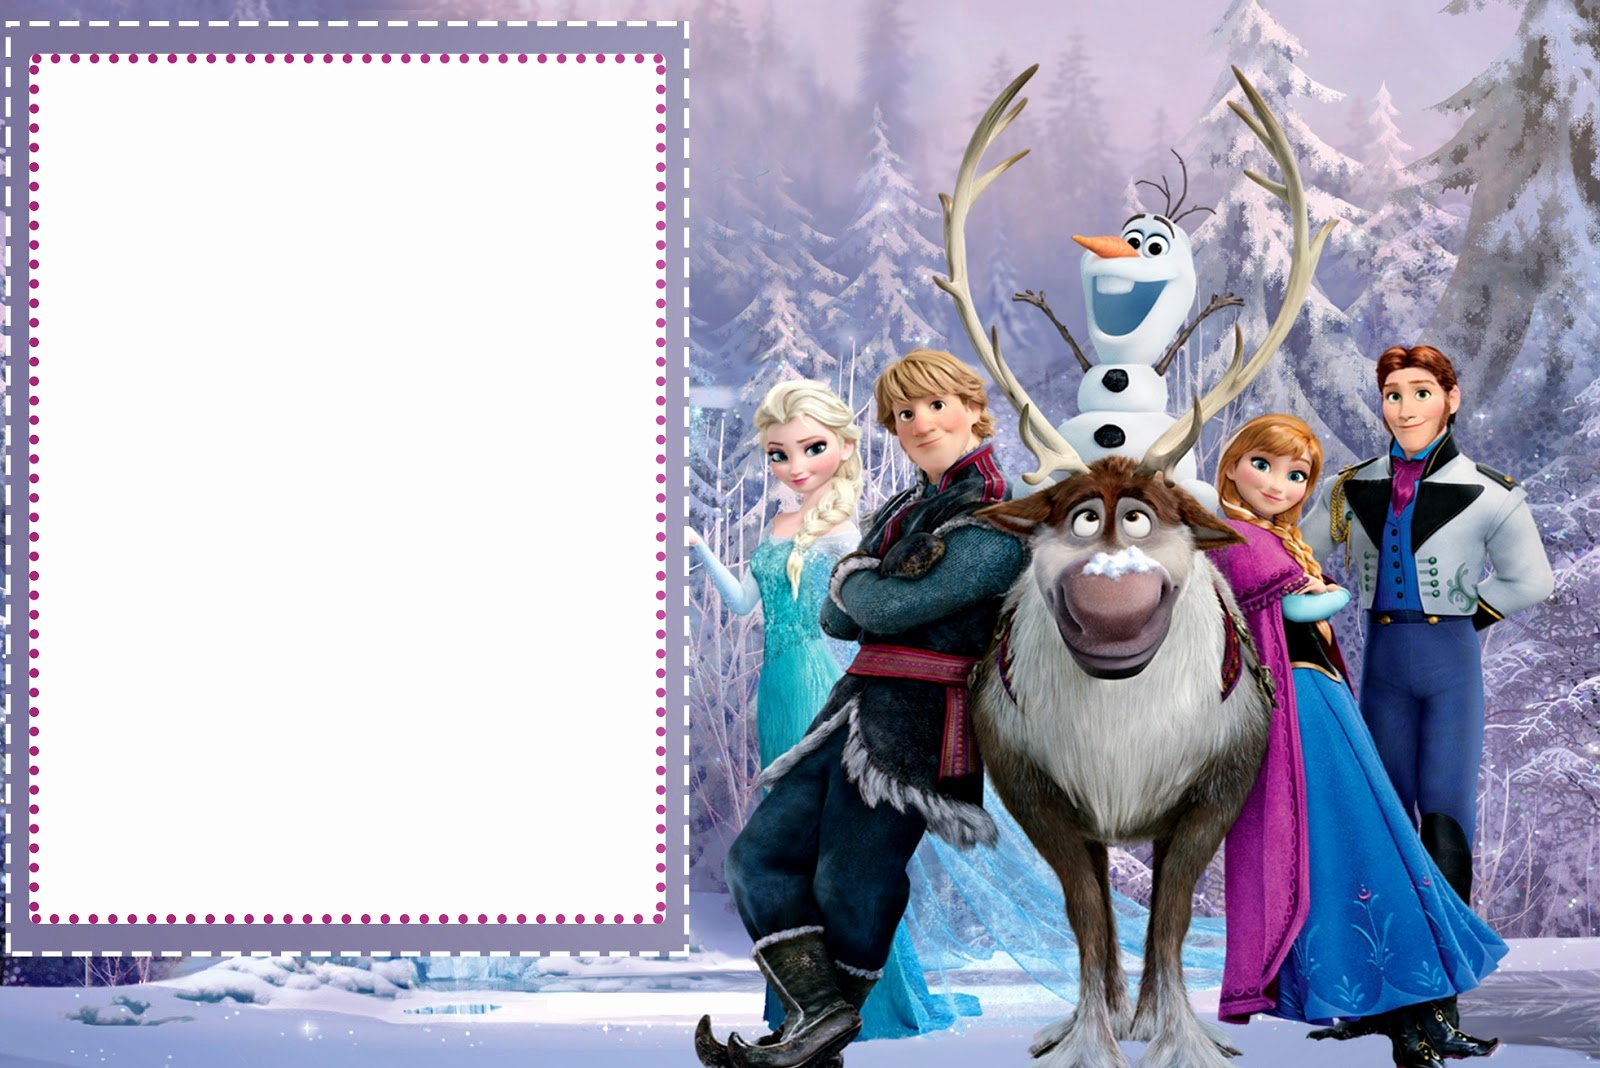 Frozen Invitation Template Free Download Elegant Frozen Free Printable Cards or Party Invitations Oh My